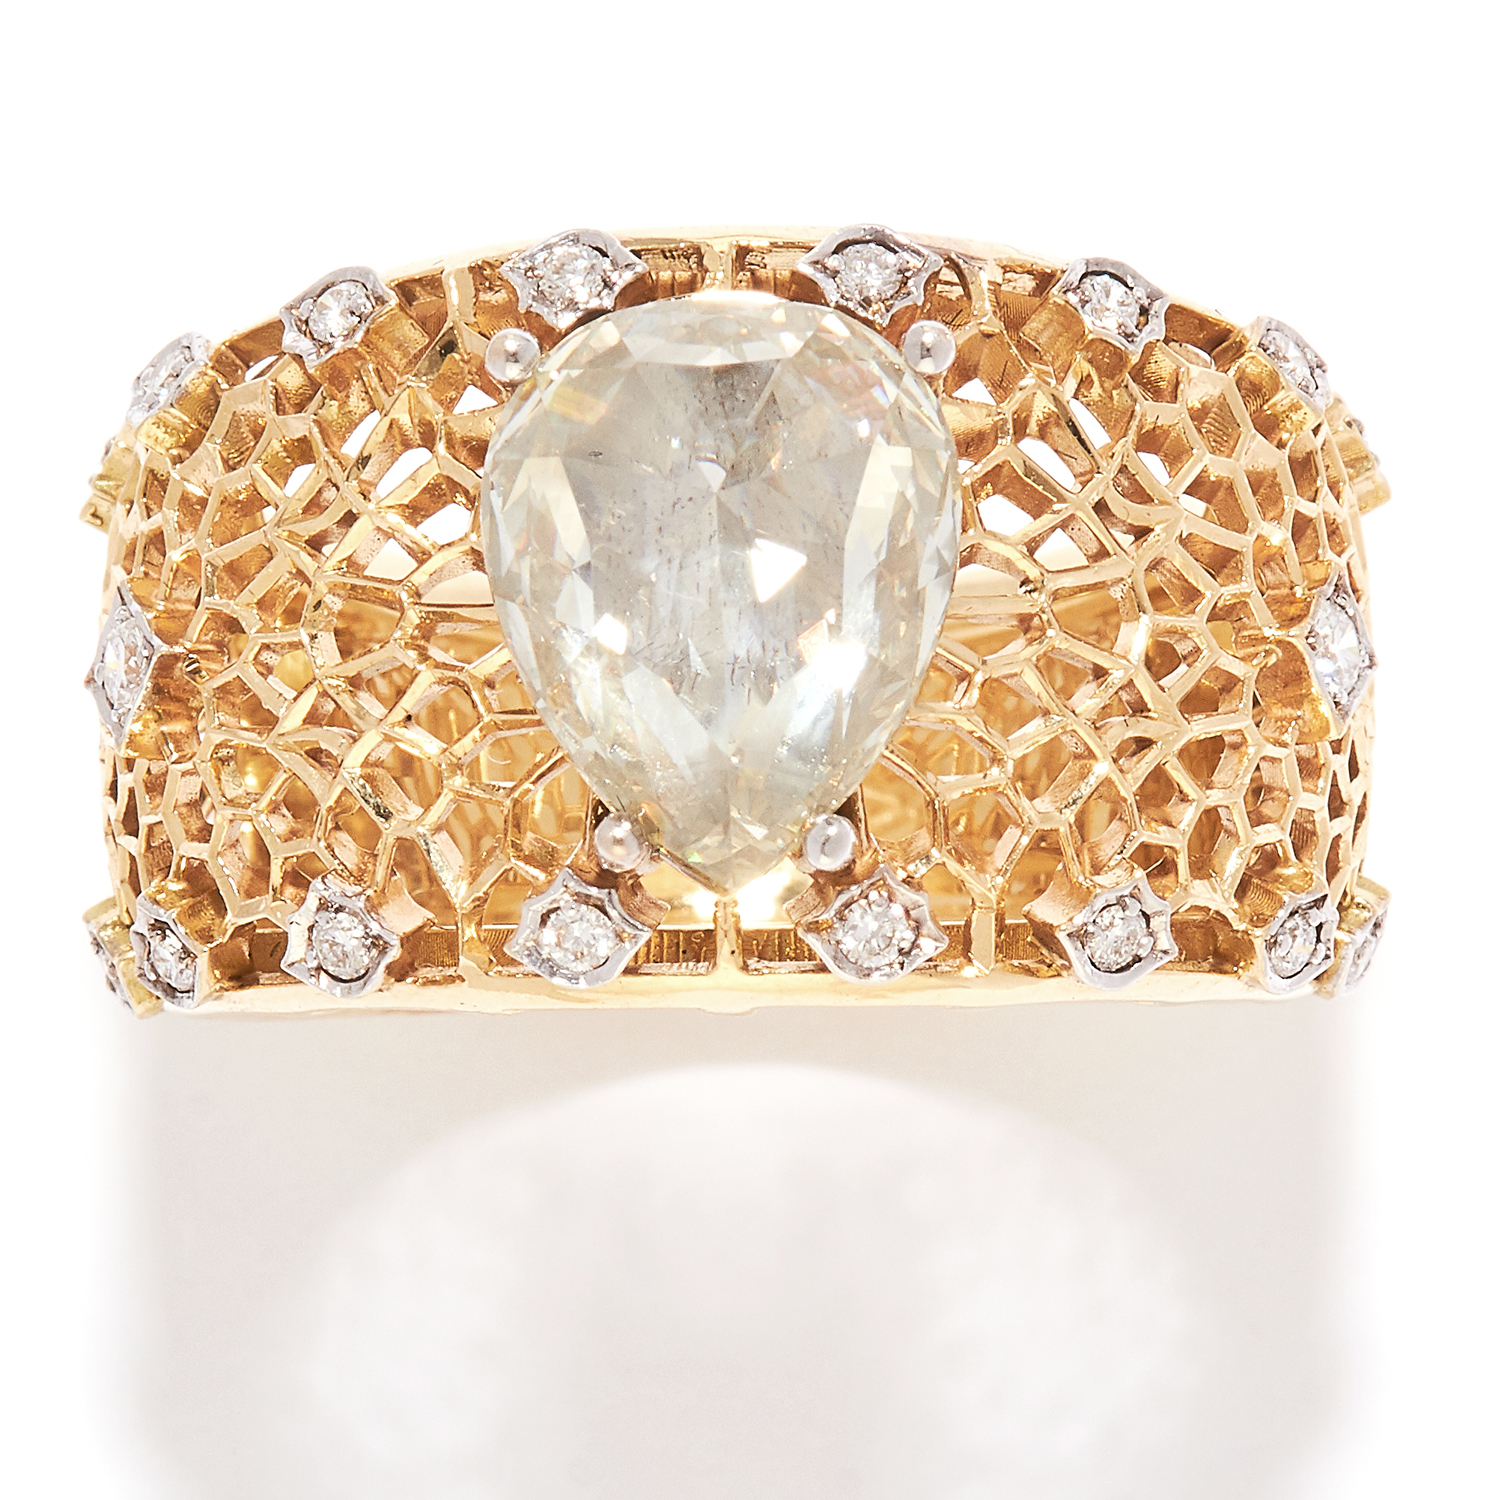 Los 58 - VINTAGE DIAMOND DRESS RING in 18ct yellow gold, the large band with openwork design, set with a pear